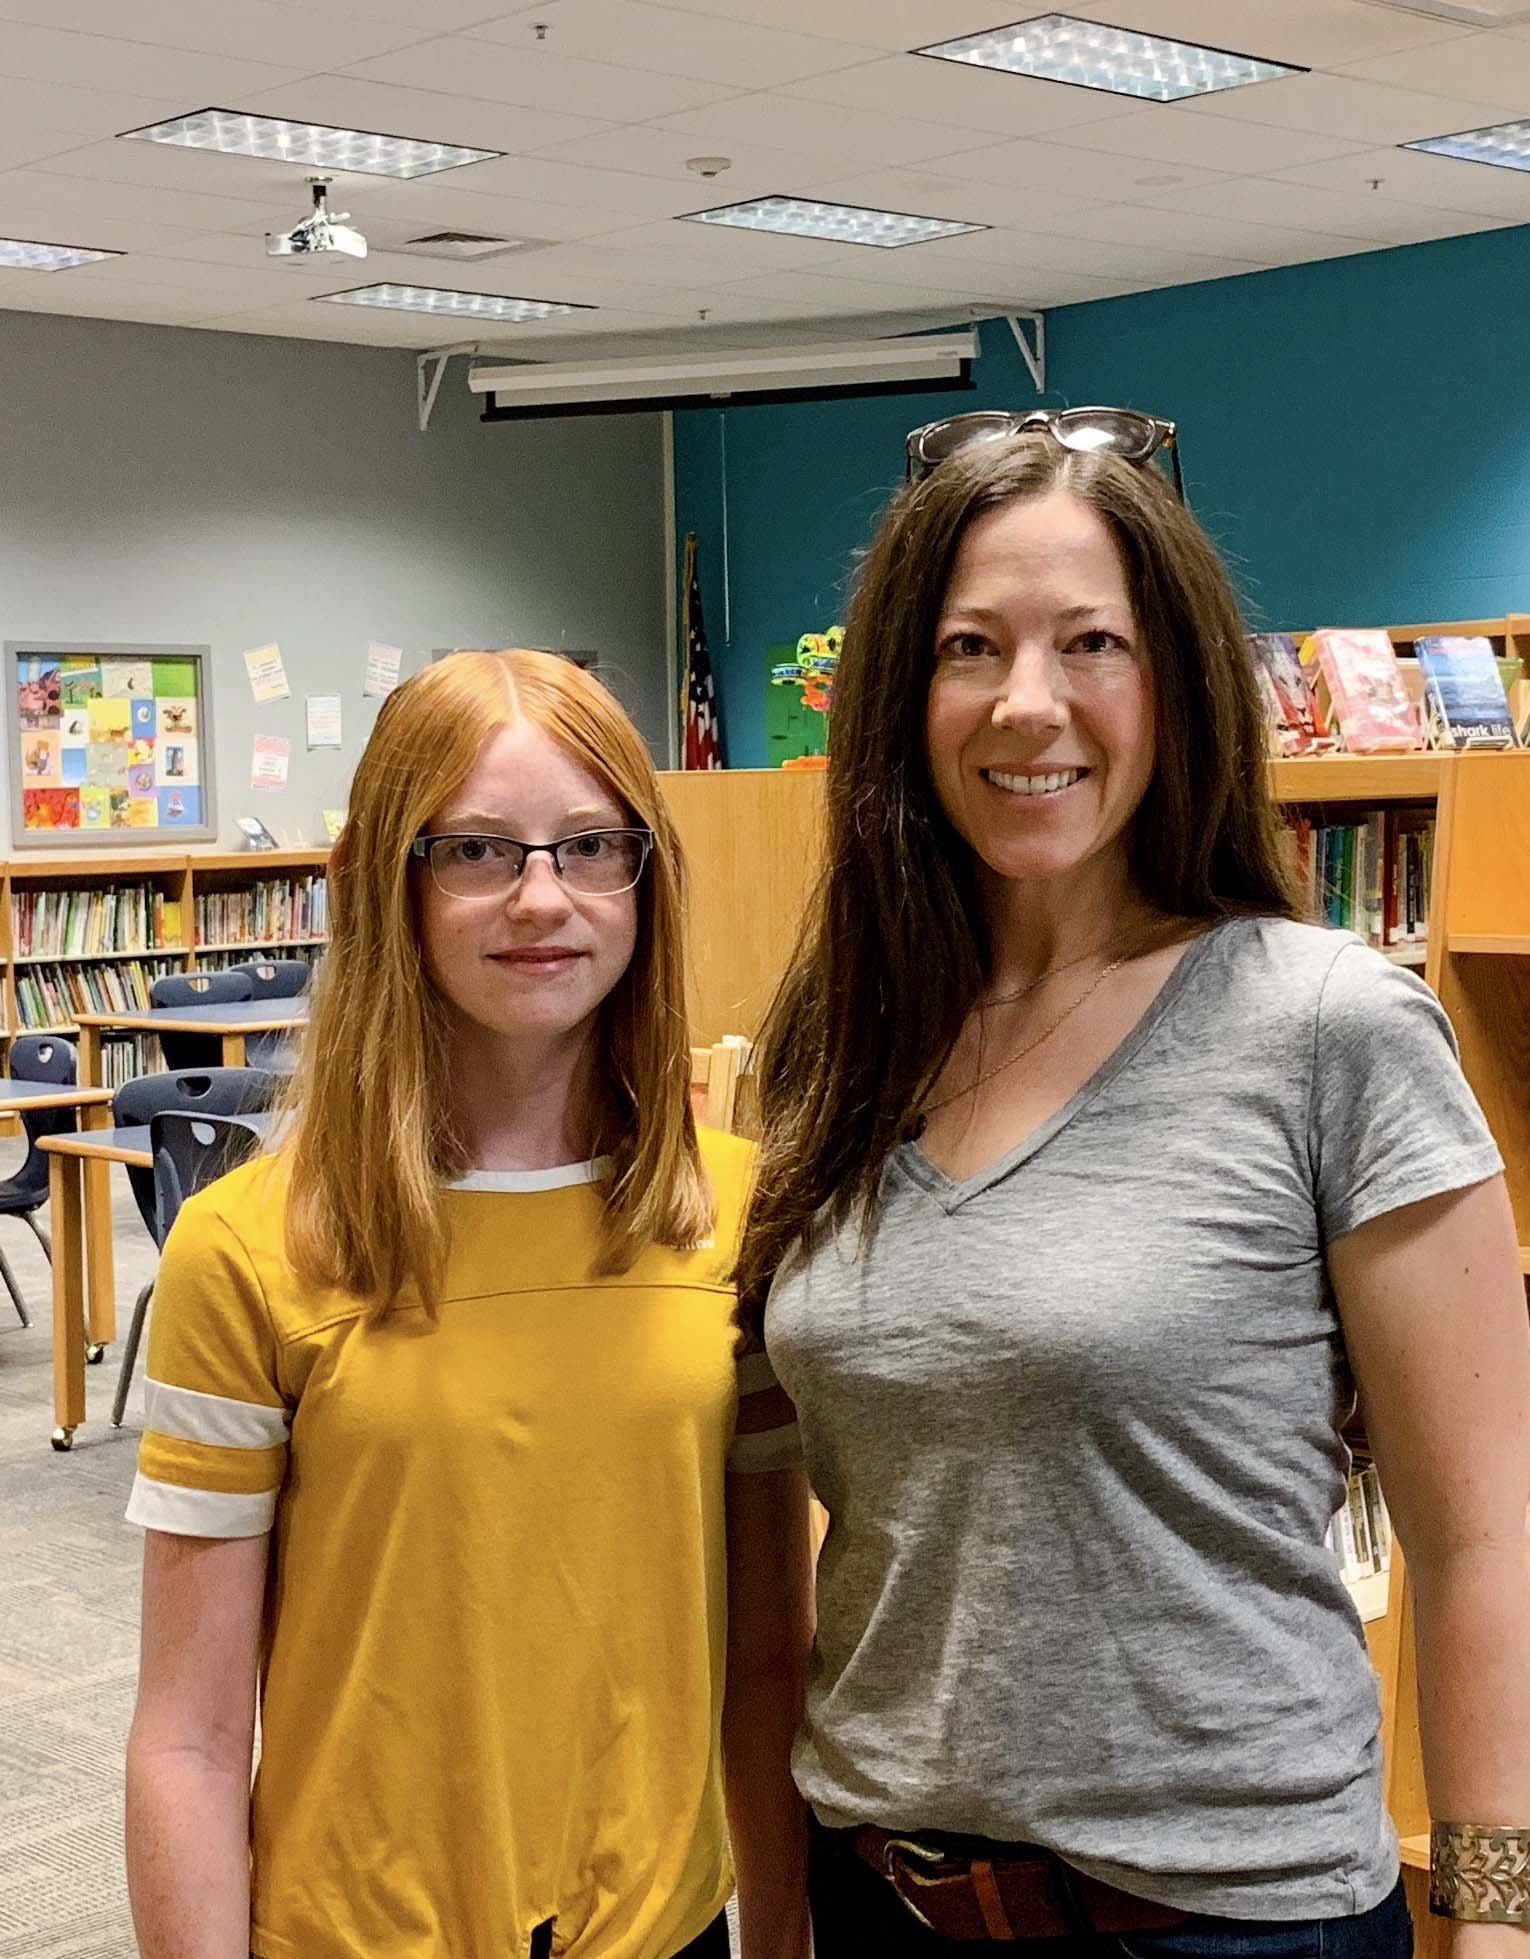 Ms. Davis and student, Brooke in a classroom